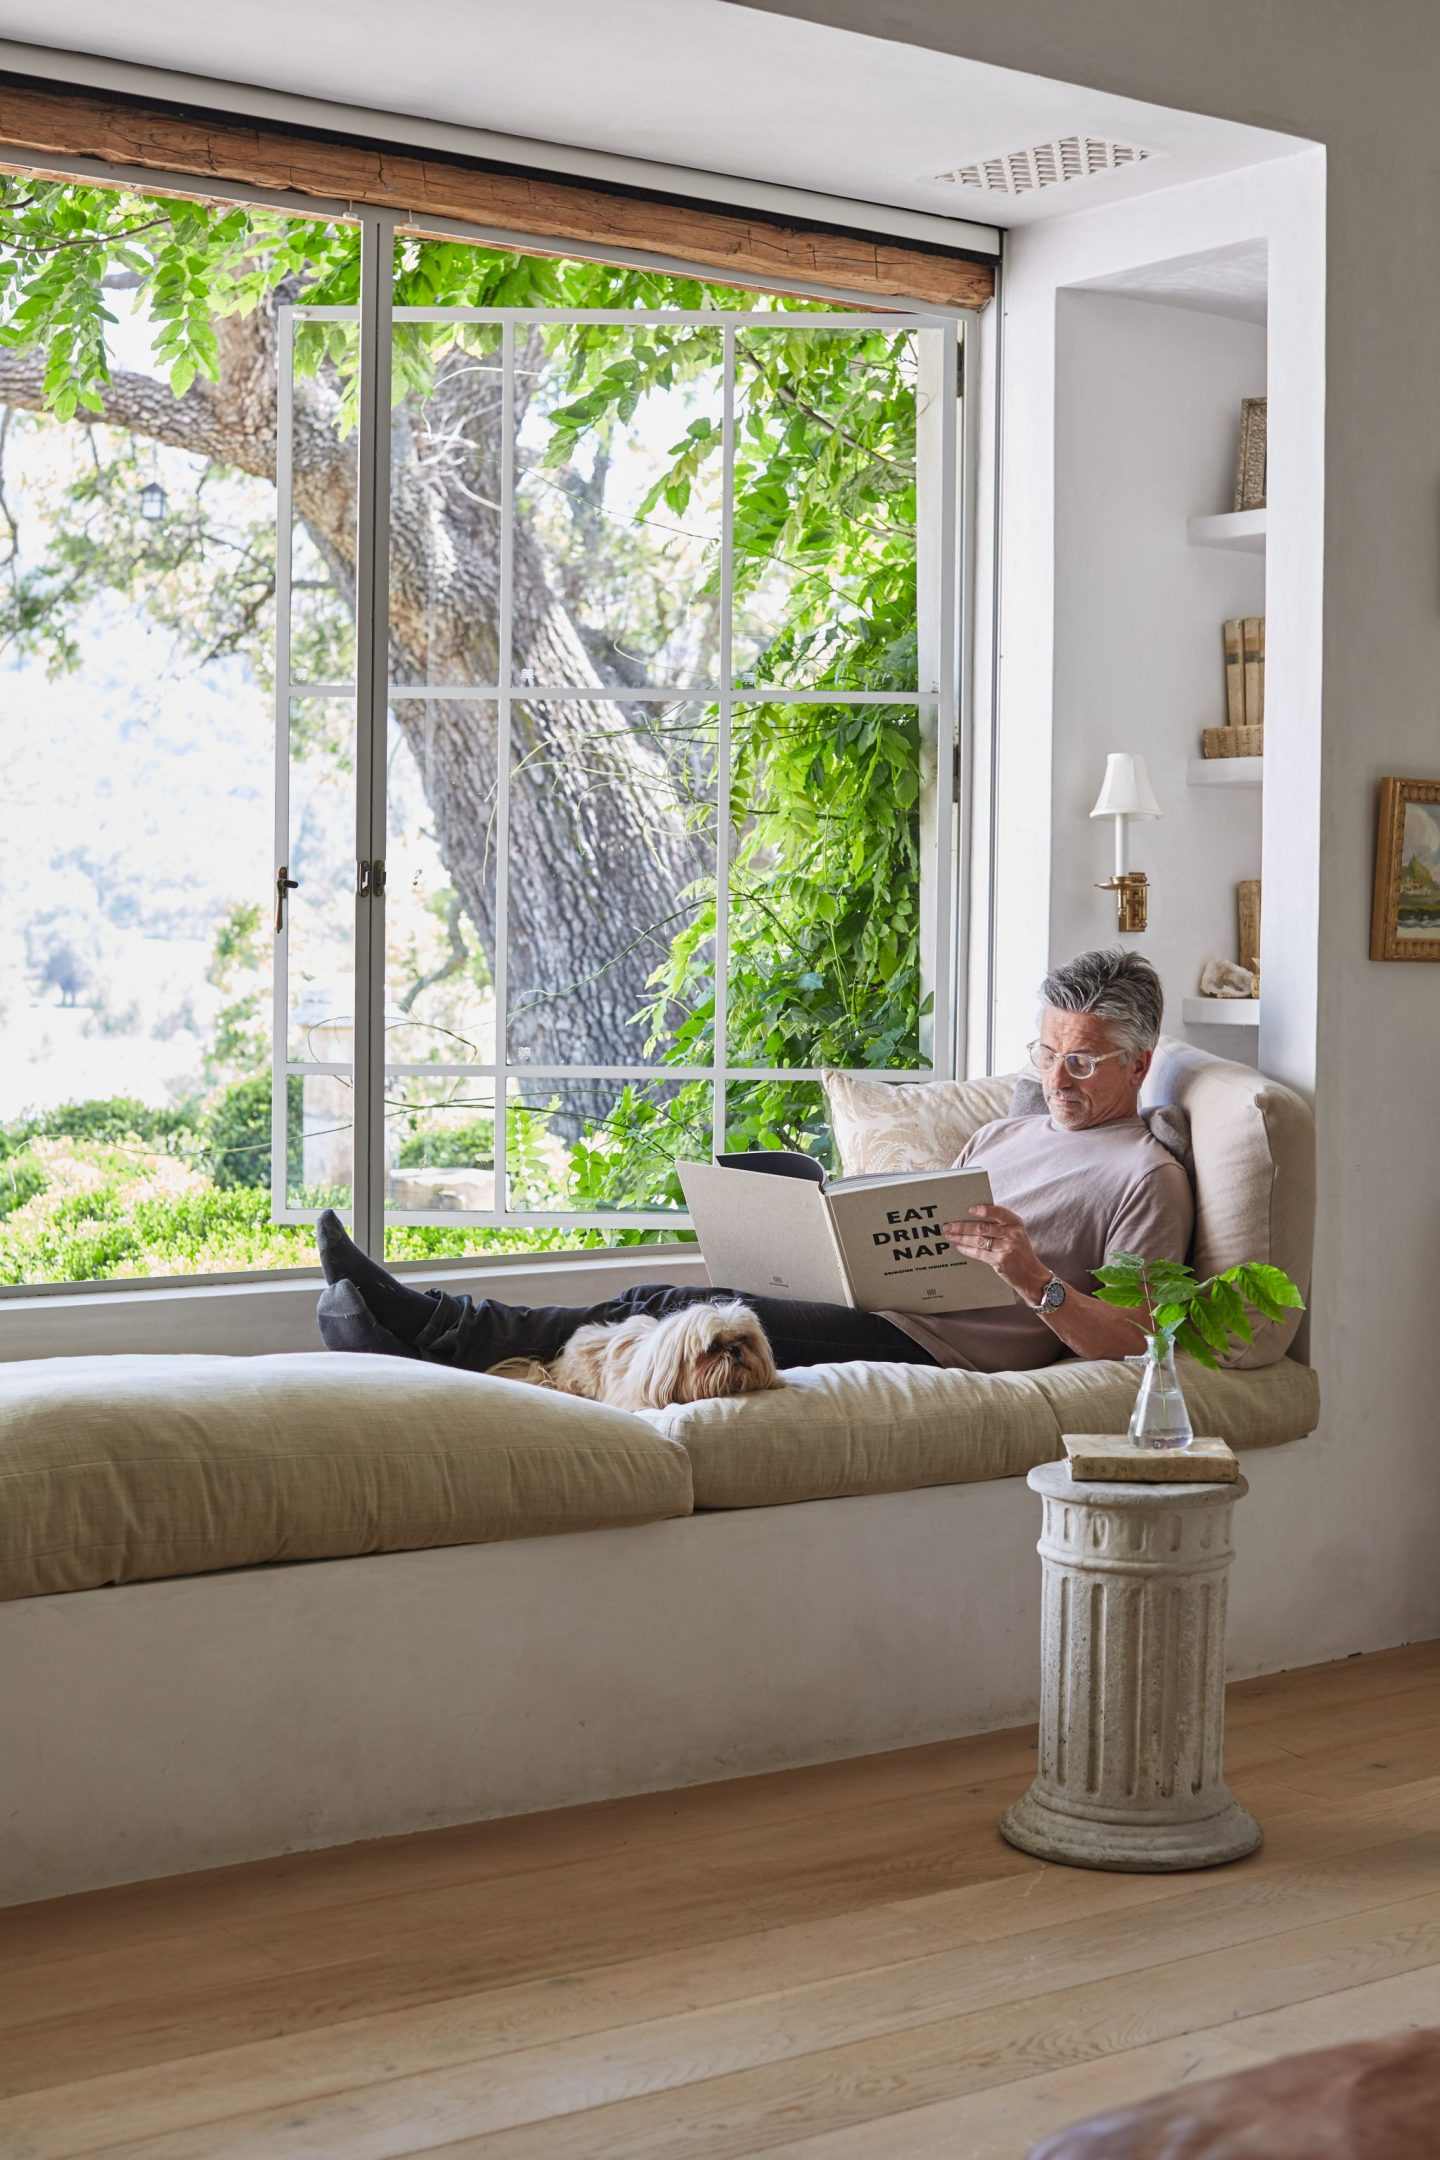 Patina Living photo of Steve Giannetti with Sophie on built-in window seat bench at Patina Farm. Photo by Victoria Pearson. #patinafarm #stevegiannetti #windowseat #europeancountry #interiordesign #modernfarmhouse